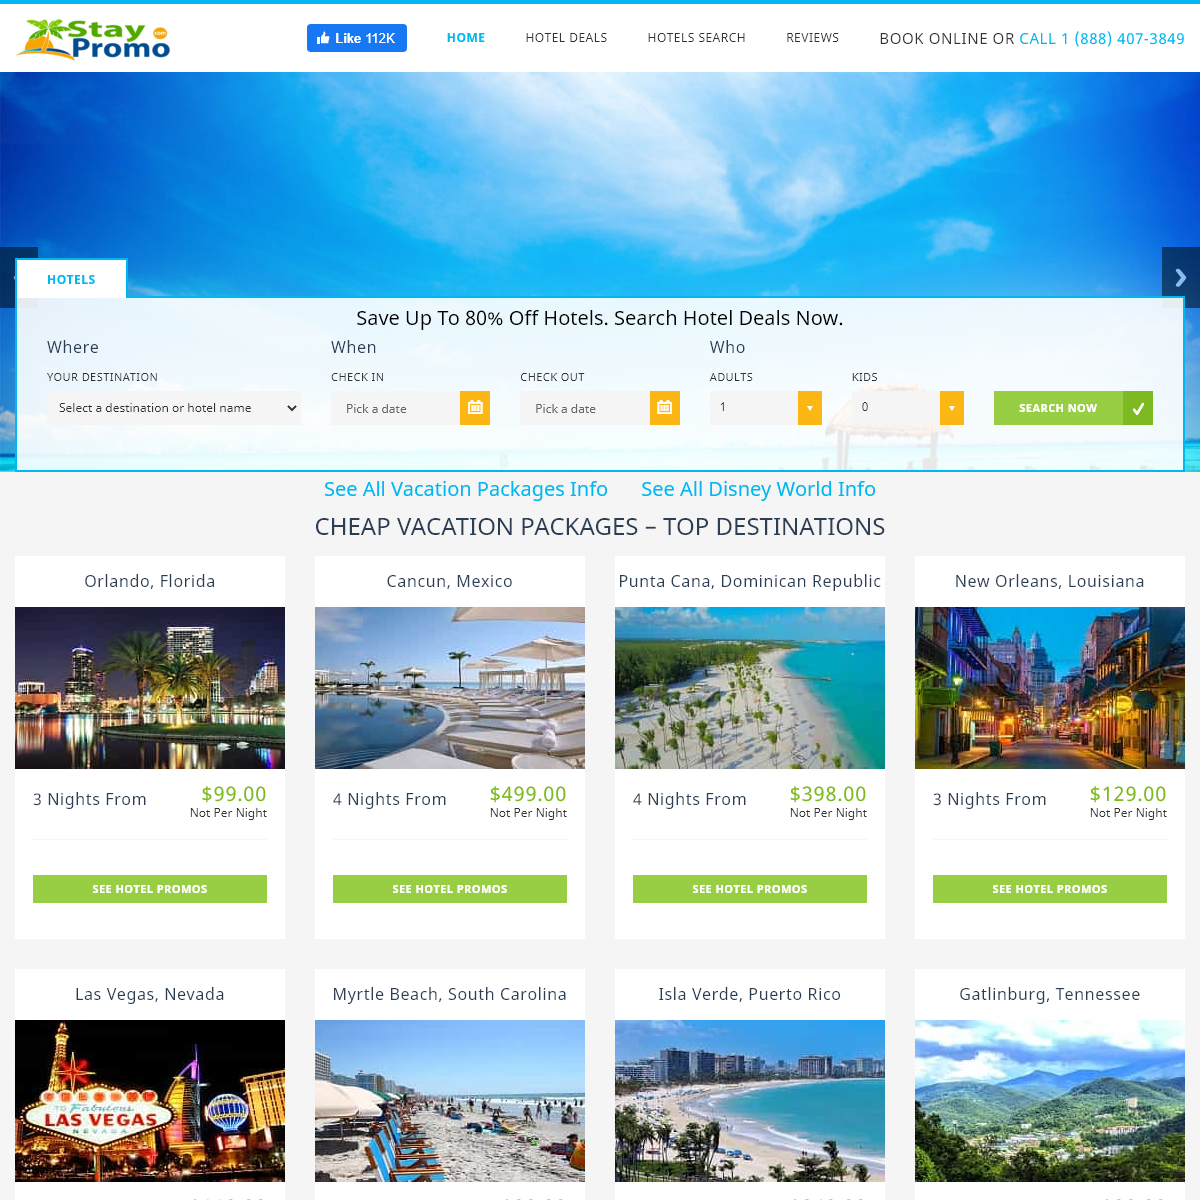 StayPromo - Stay Promo Cheap Vacation Packages Discount Hotel Deals